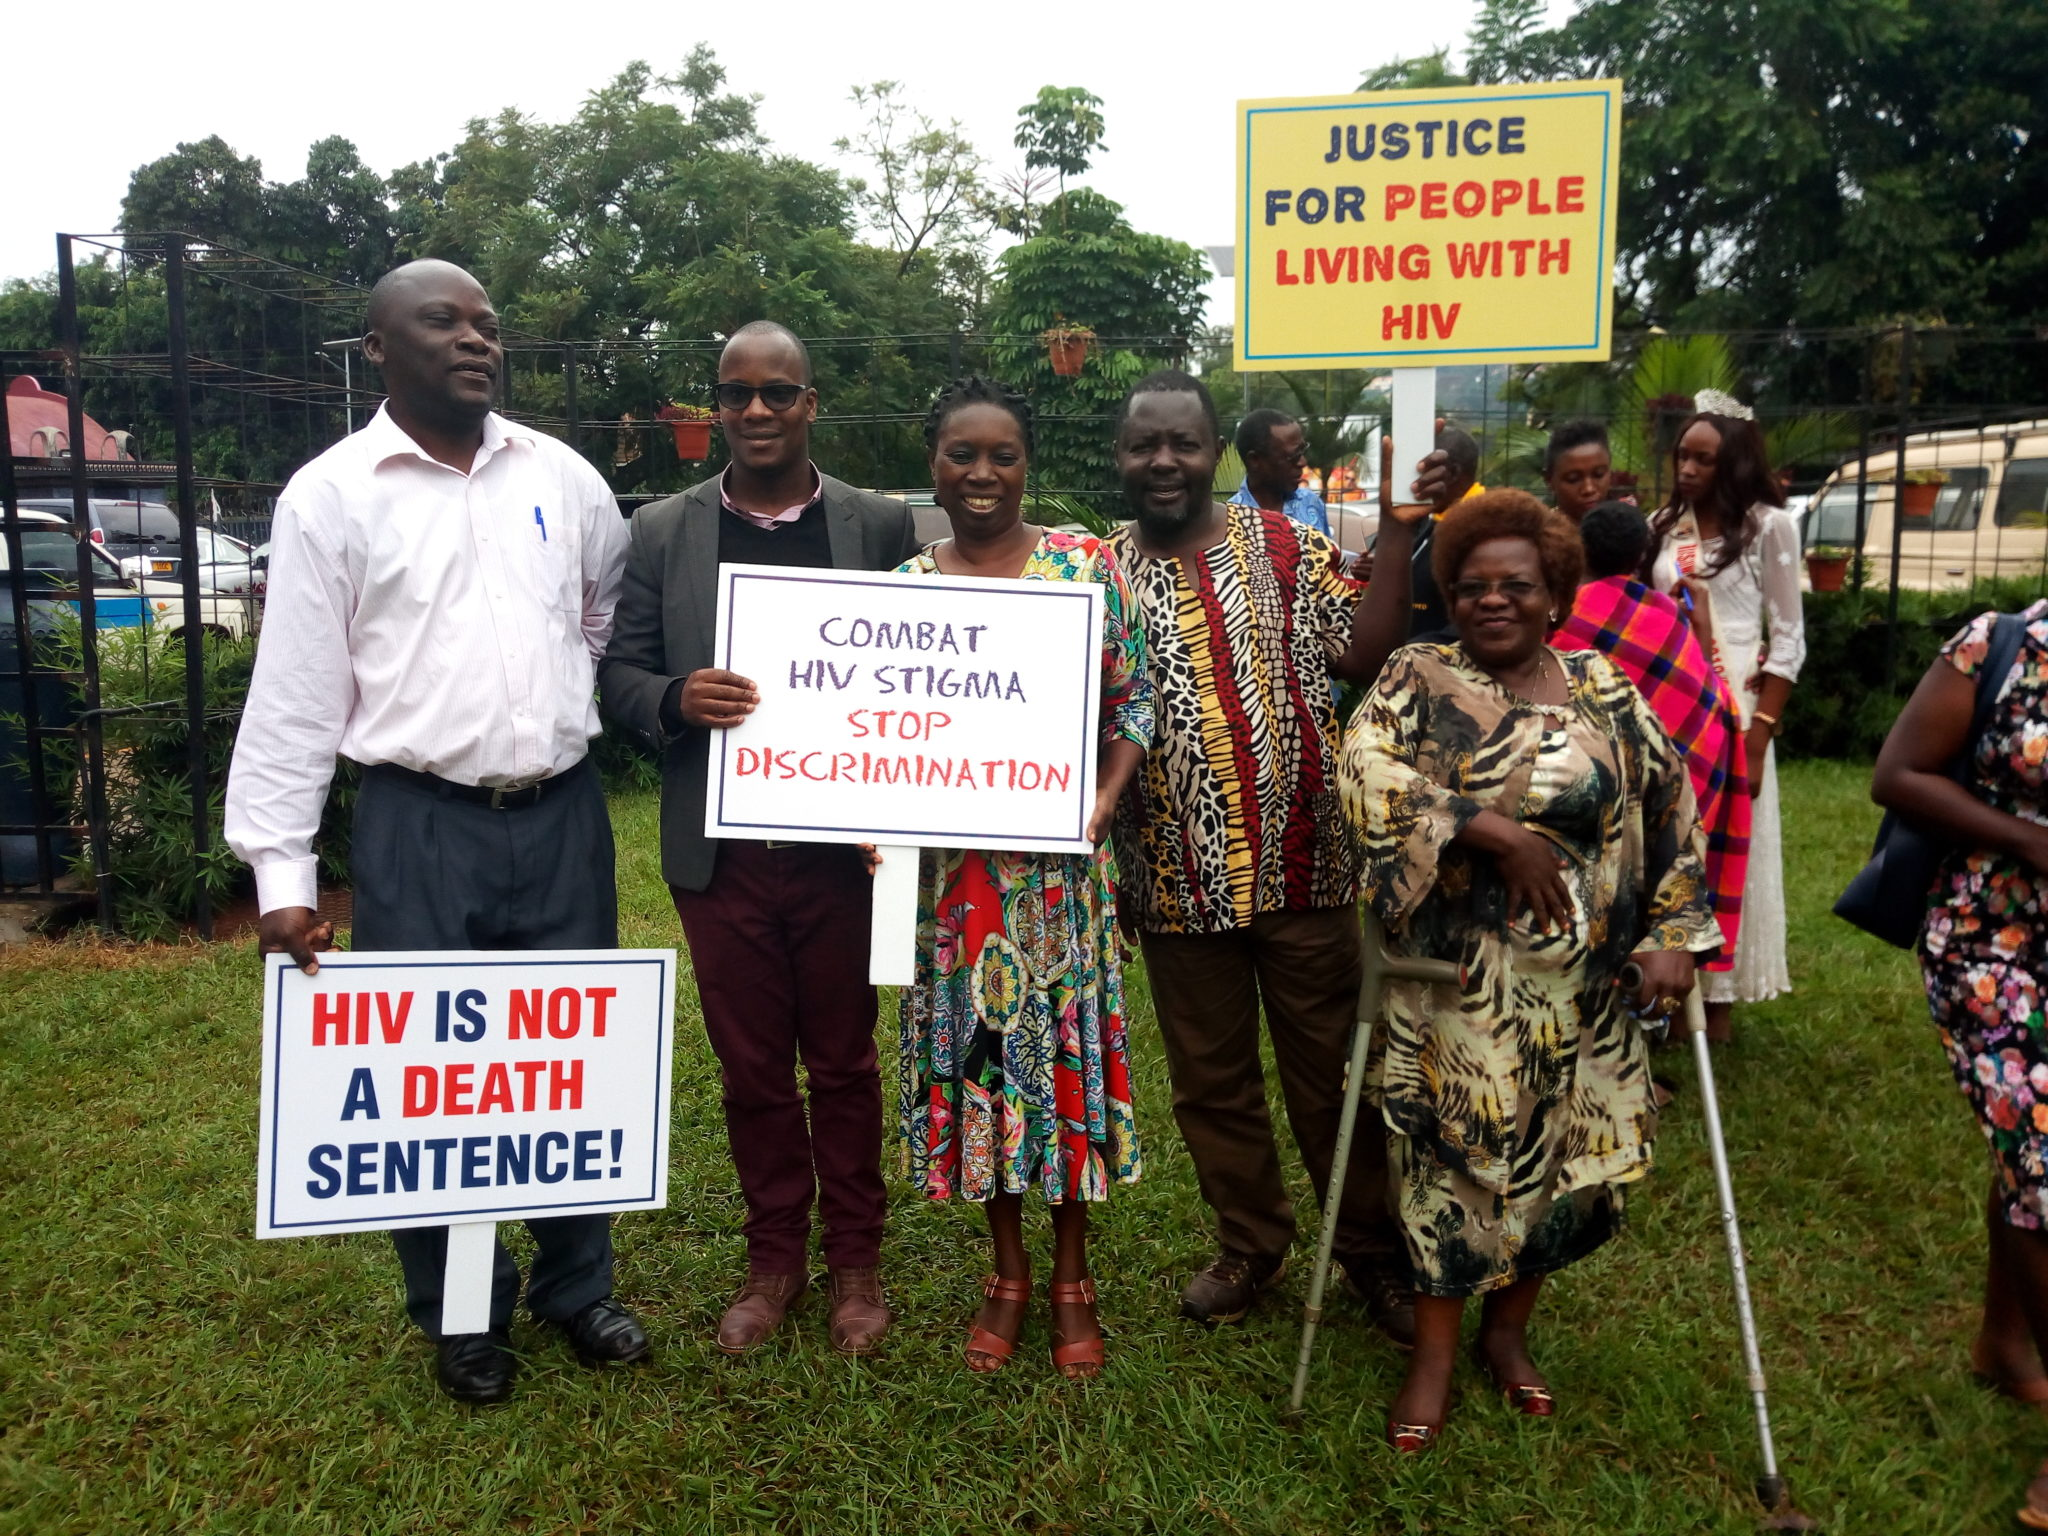 Ugandan protest for HIV+ rights